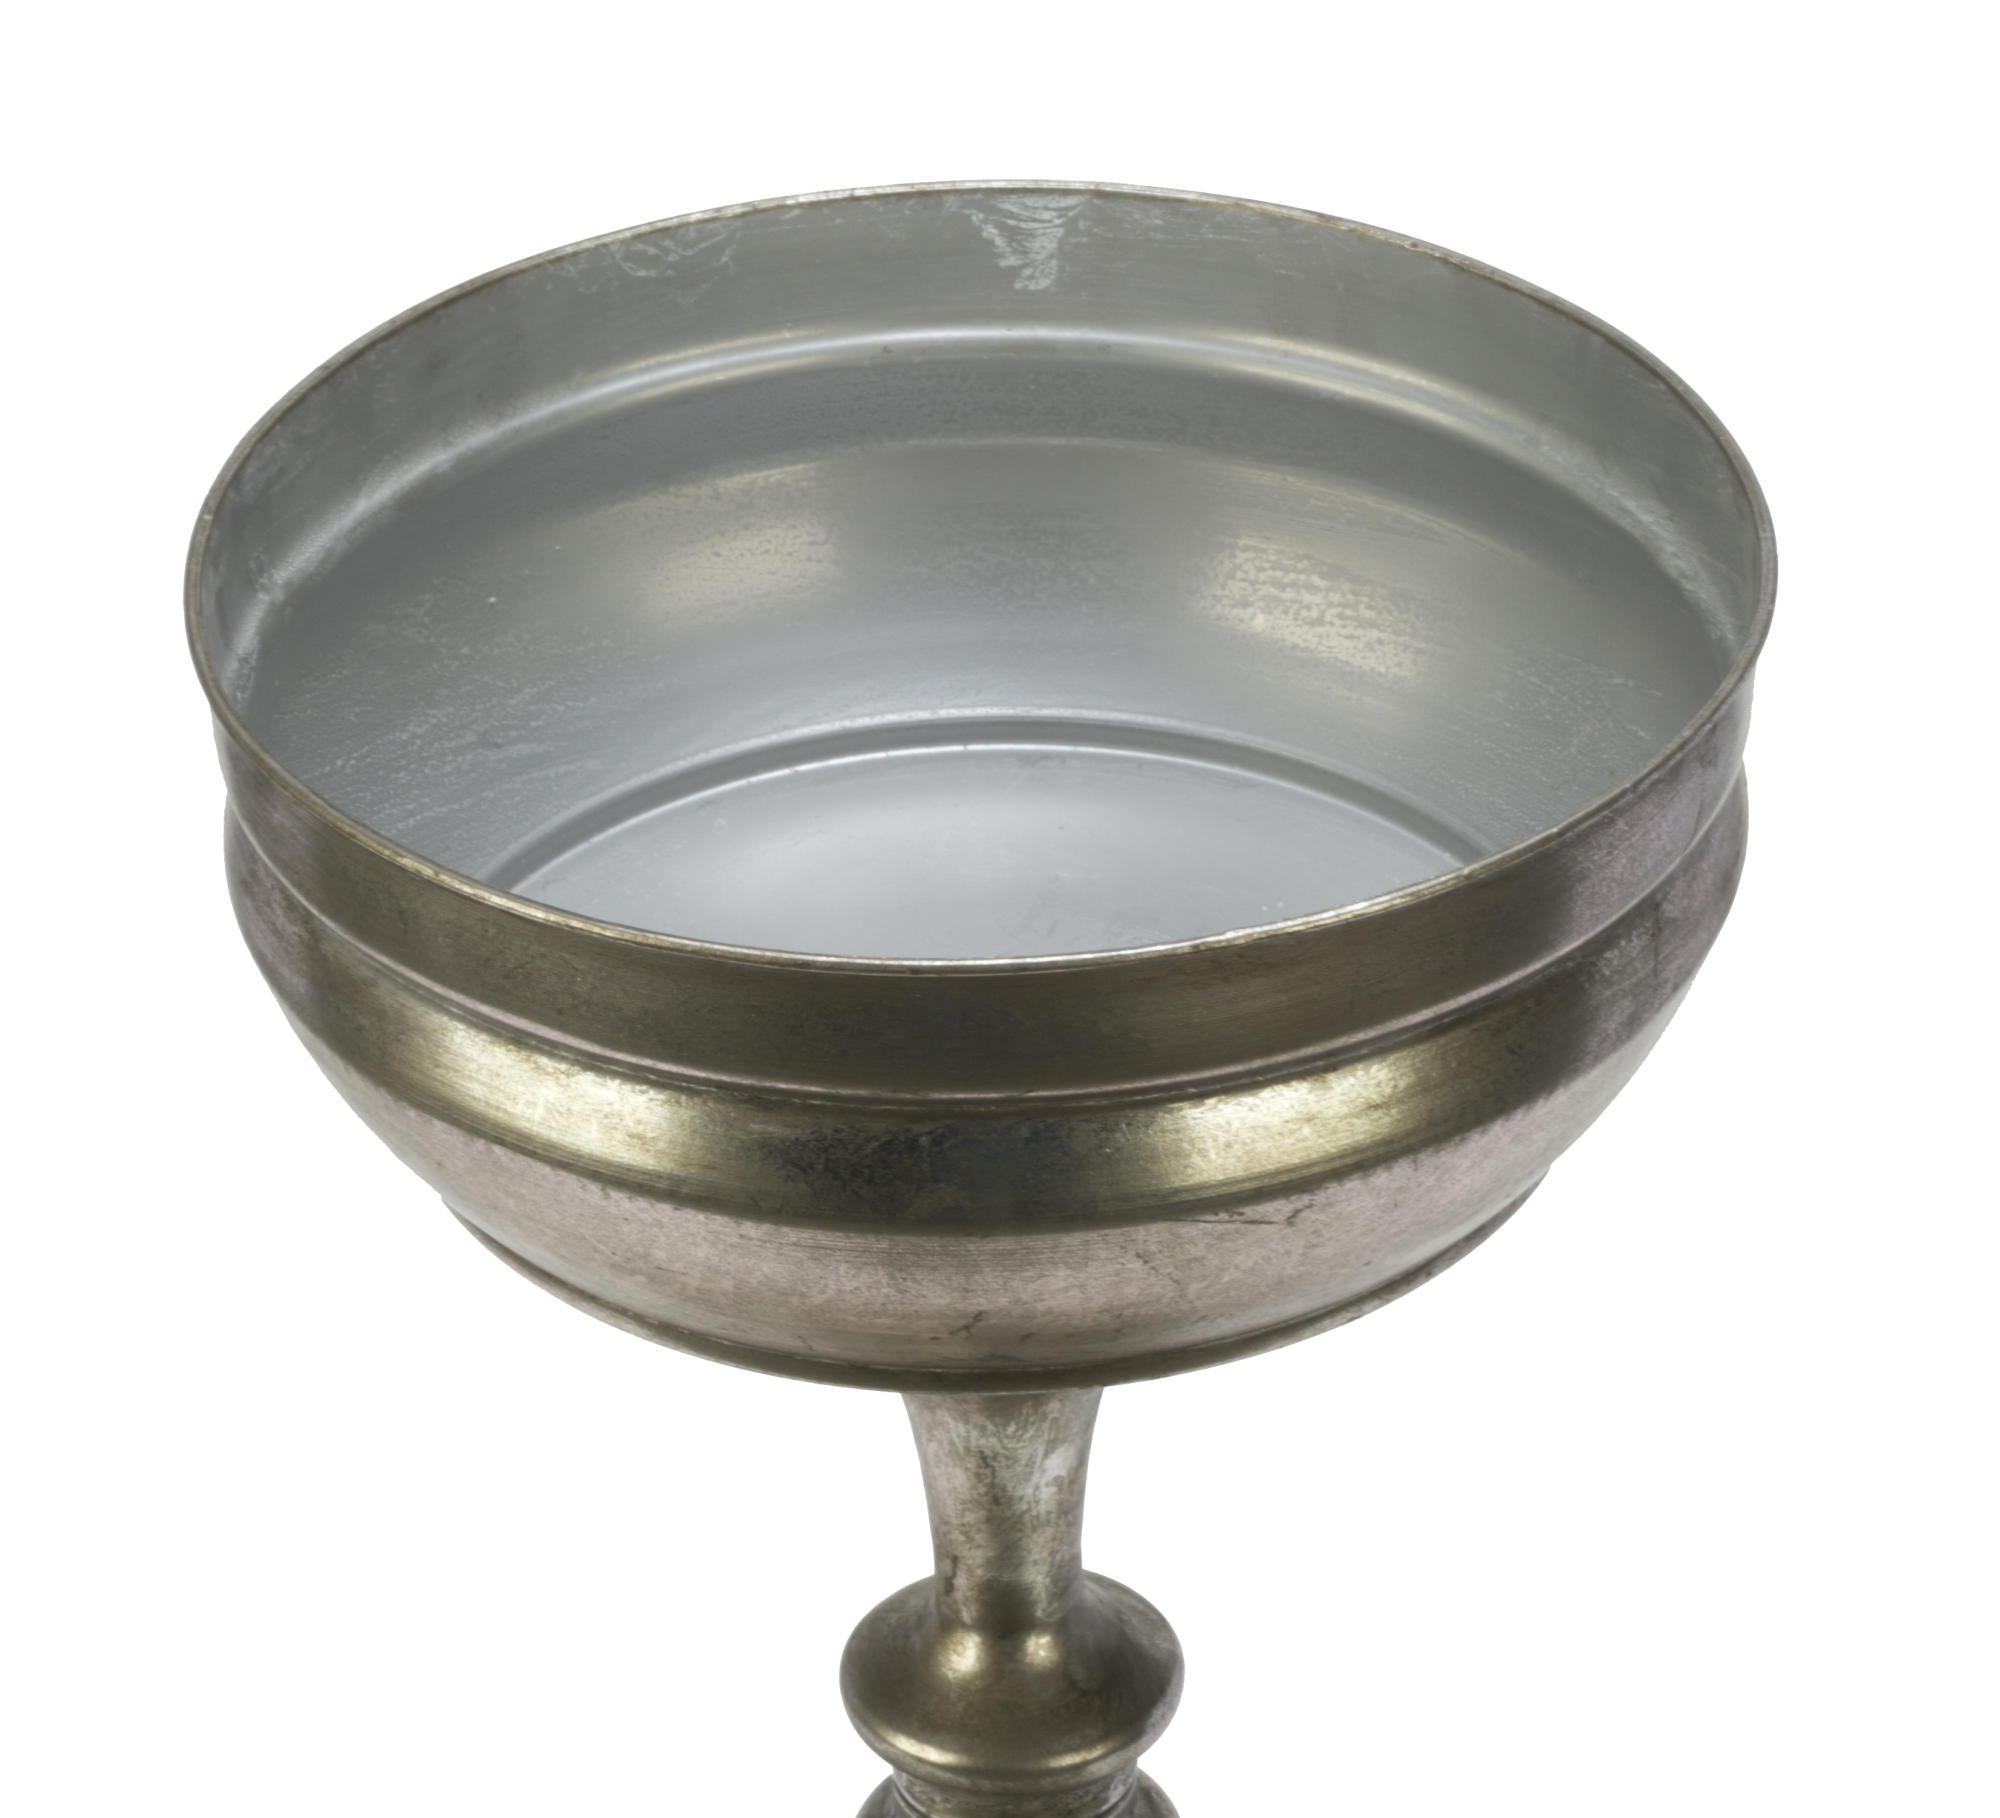 How To Display Bowls Burnished Silver Display Bowls Tripar International Inc